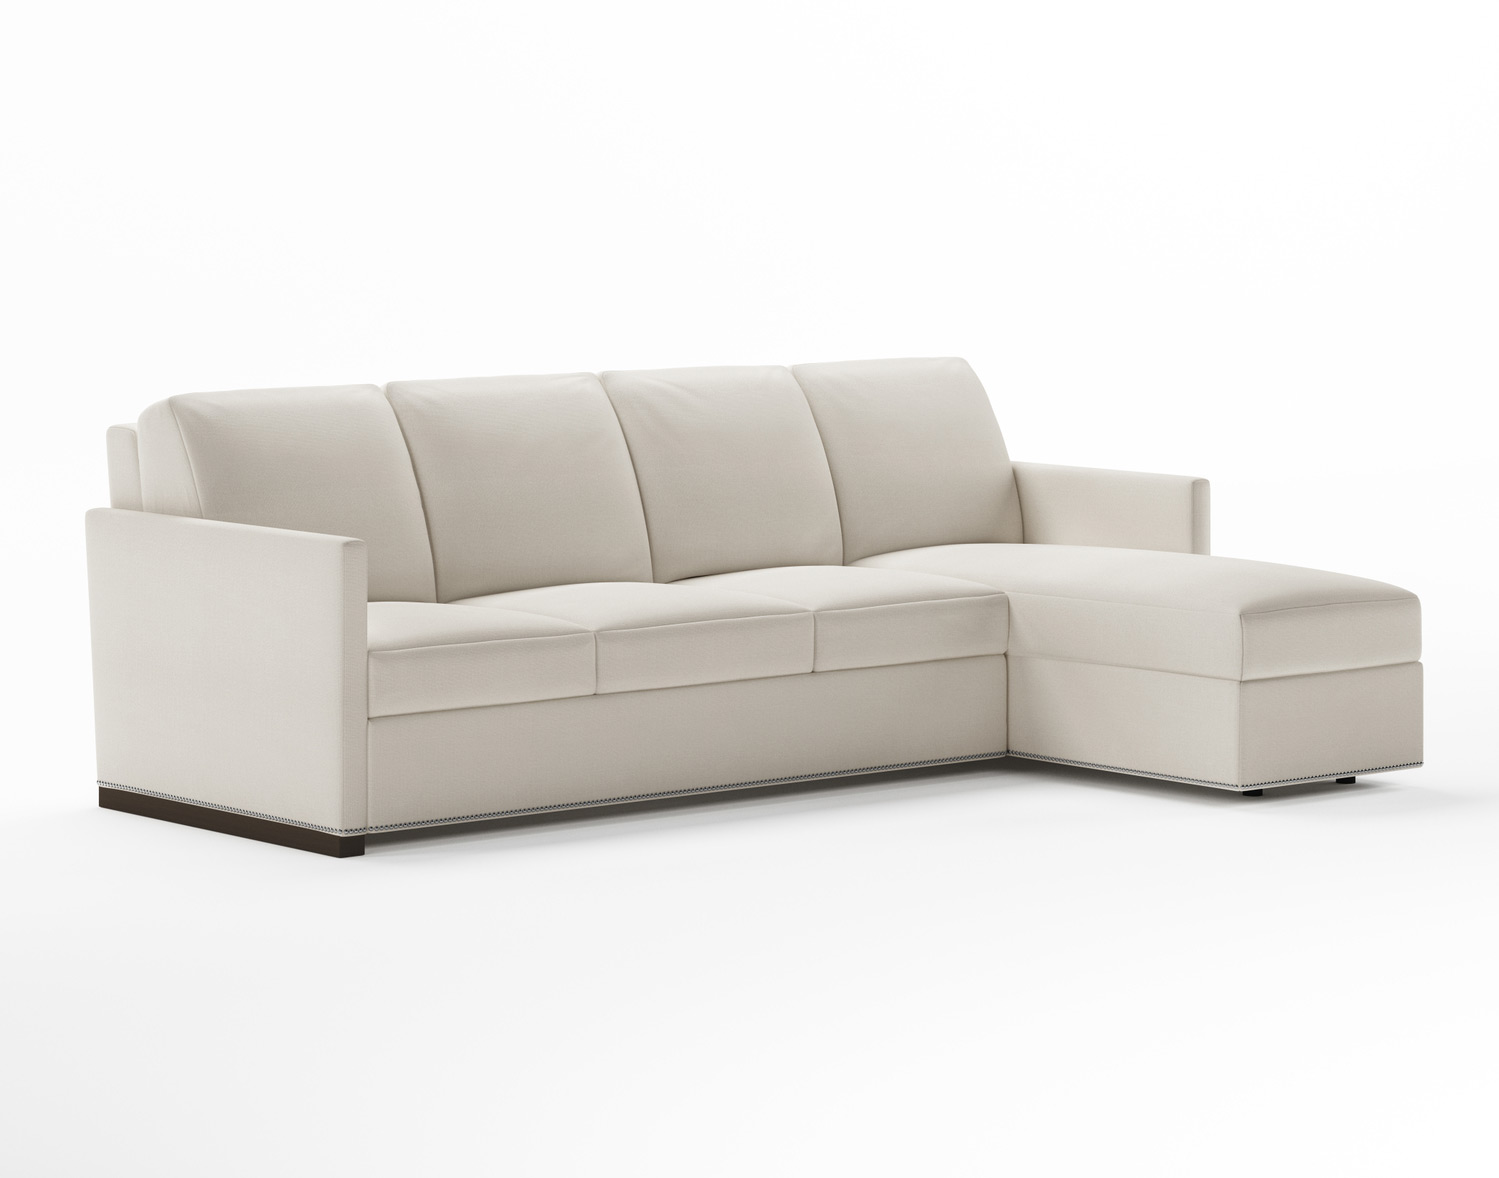 Pearson Convertible Comfort Sleeper Sectional with Nailhead Trim